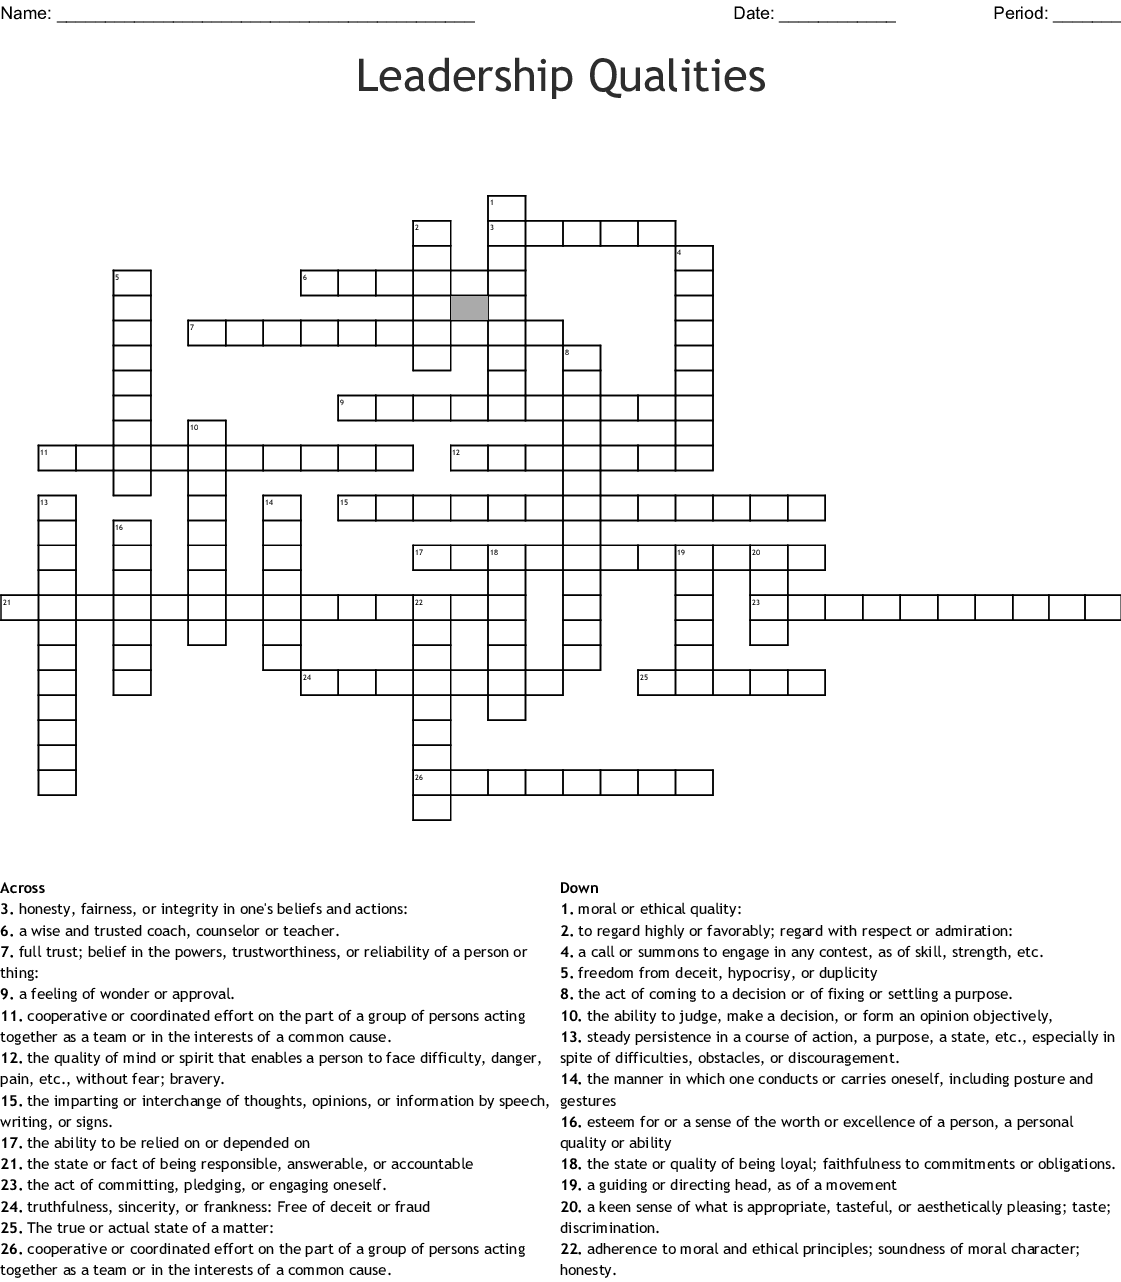 Leadership Qualities Crossword Wordmint